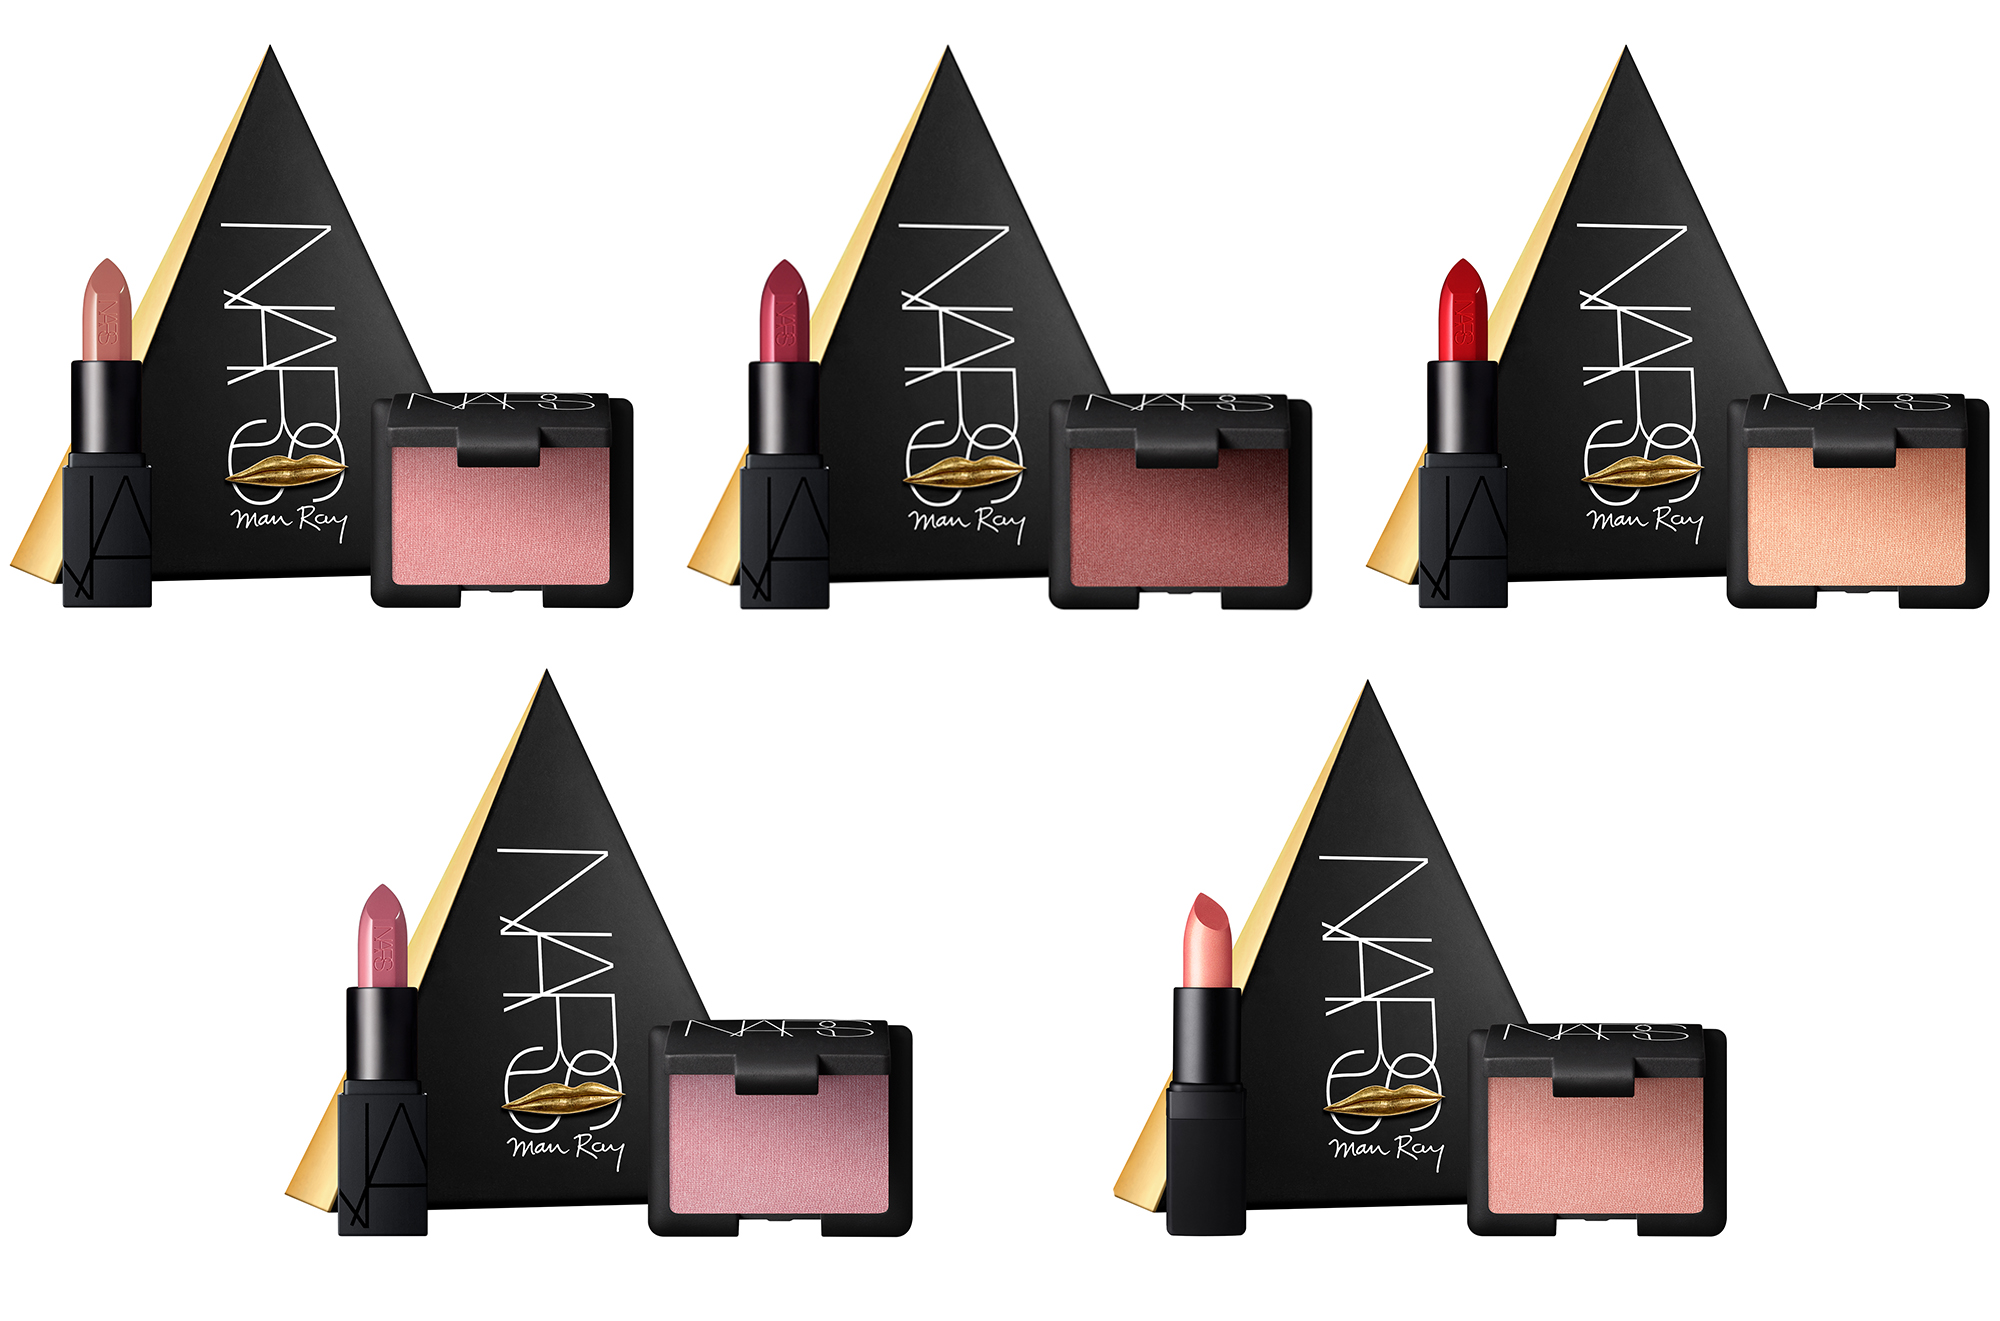 NARS Man Ray Collection